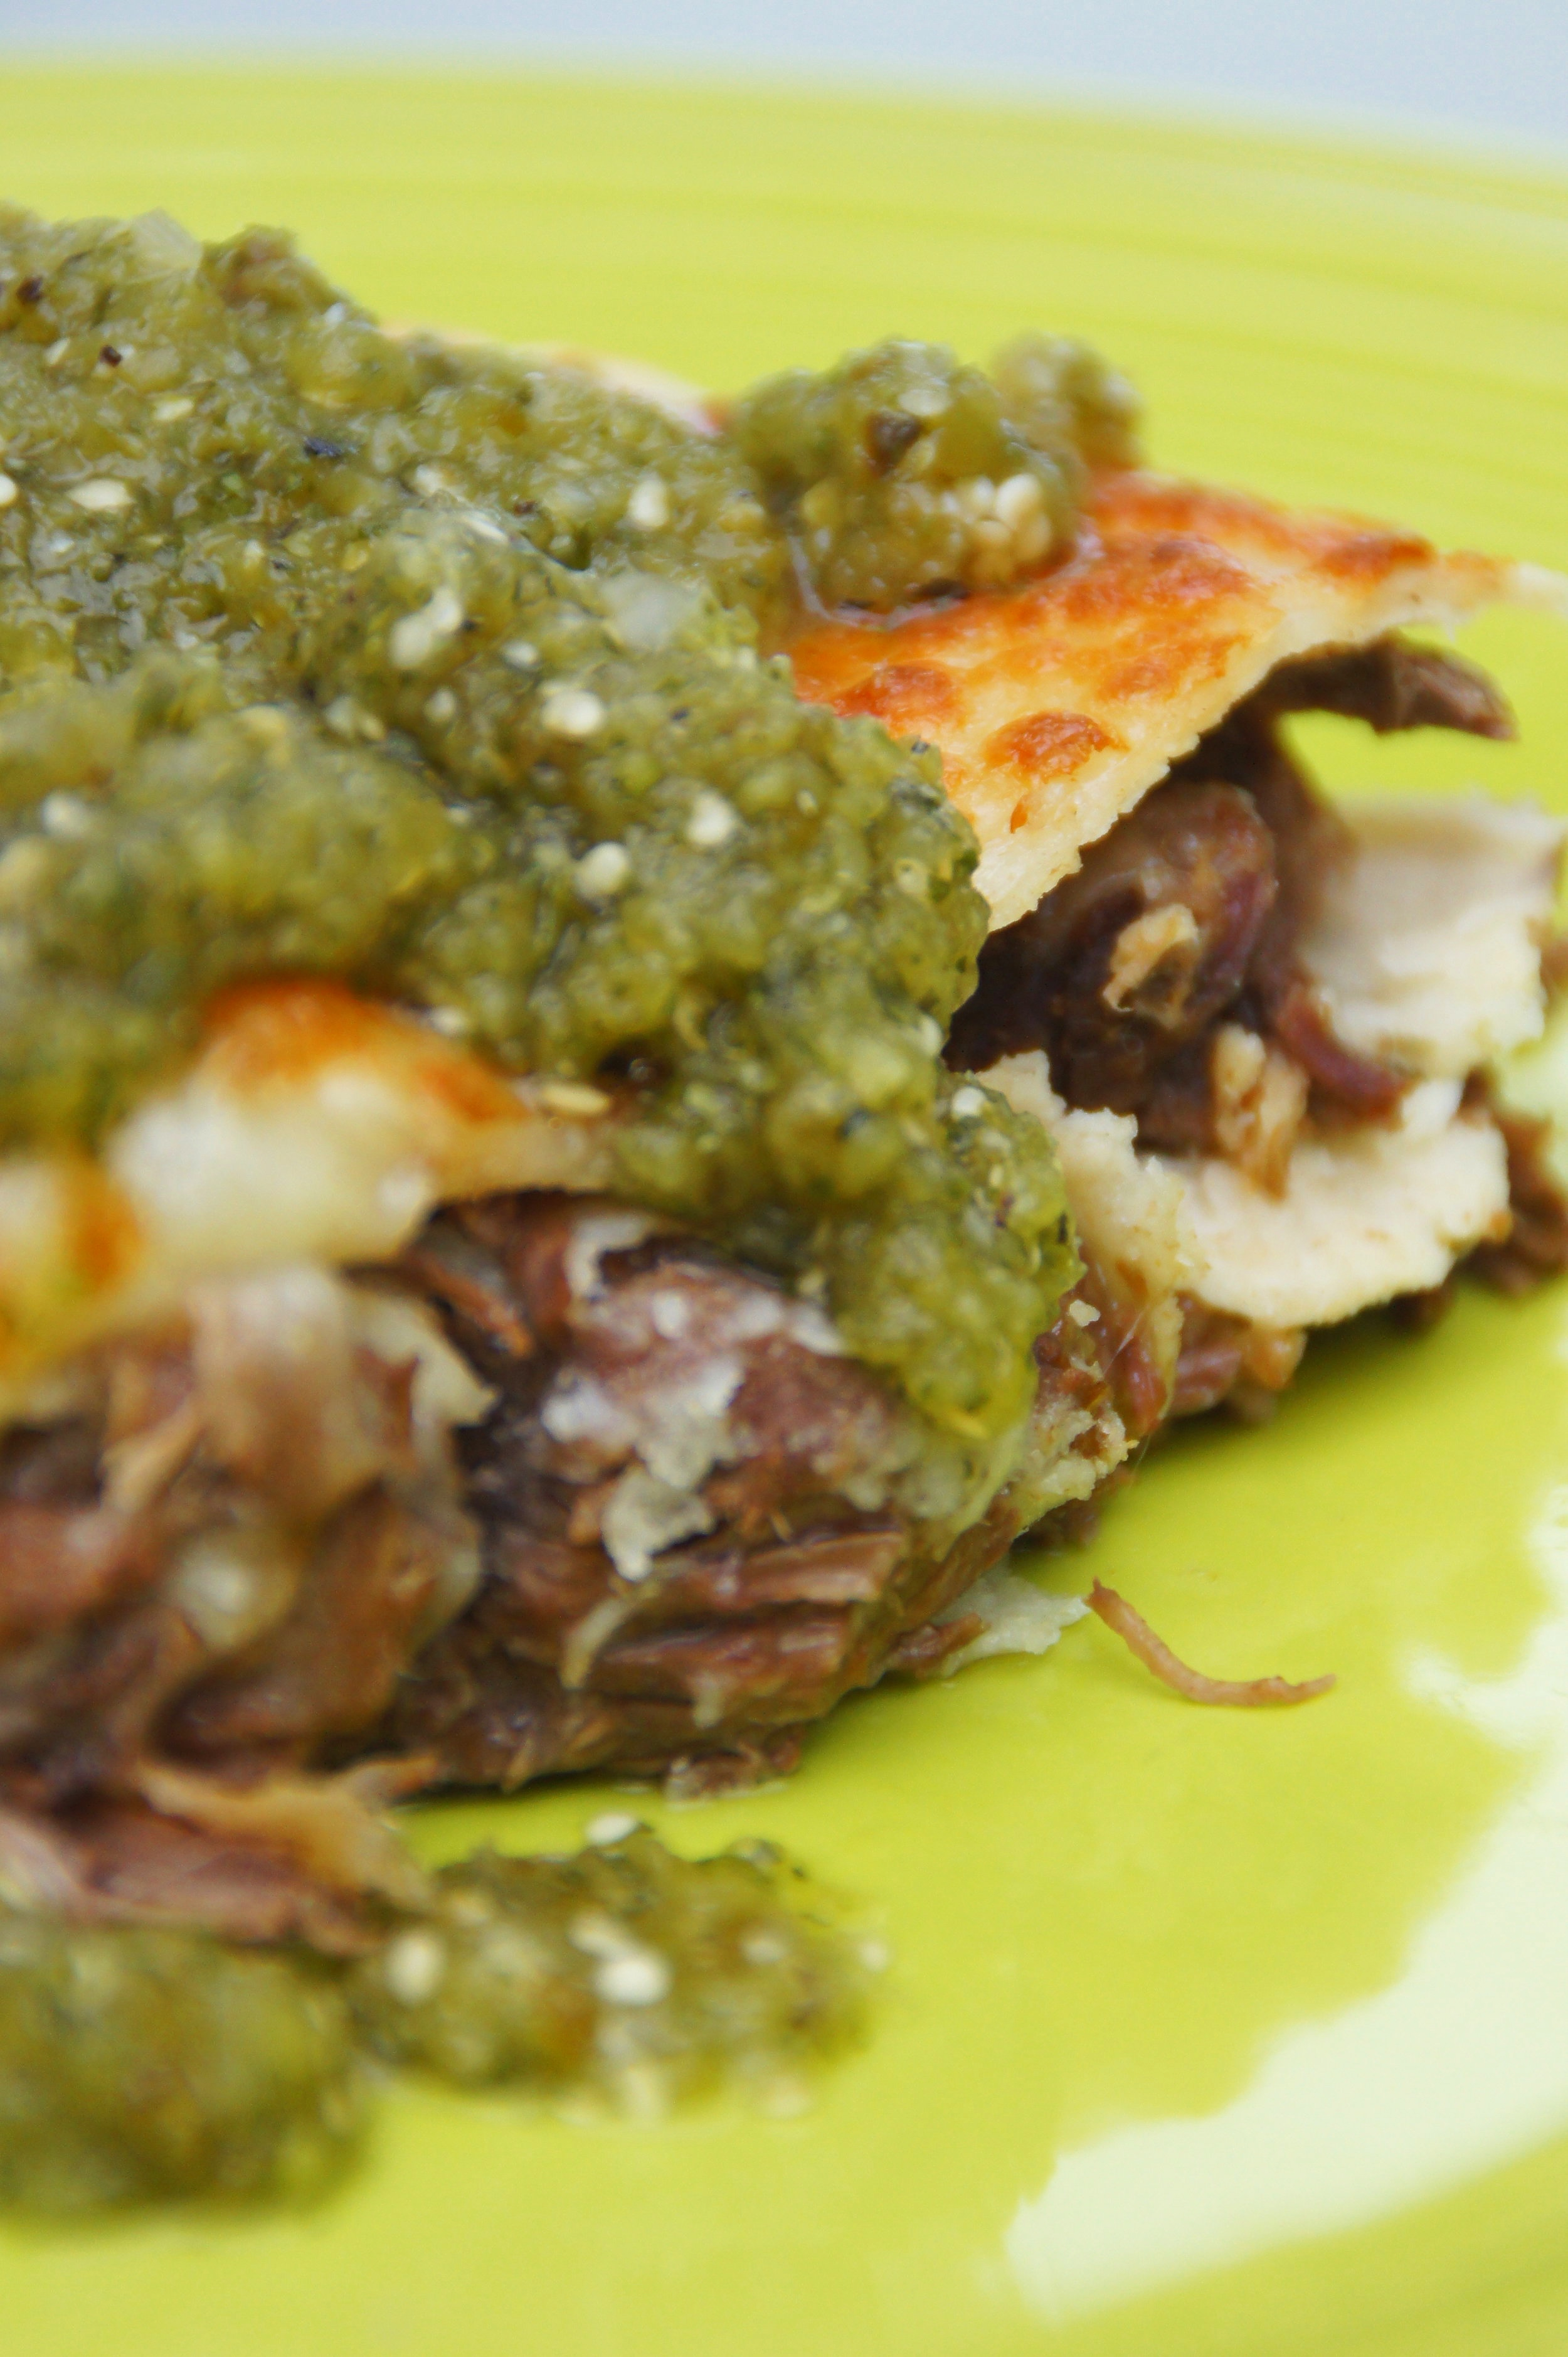 Perfectly melted cheese topped with  fresh salsa verde .